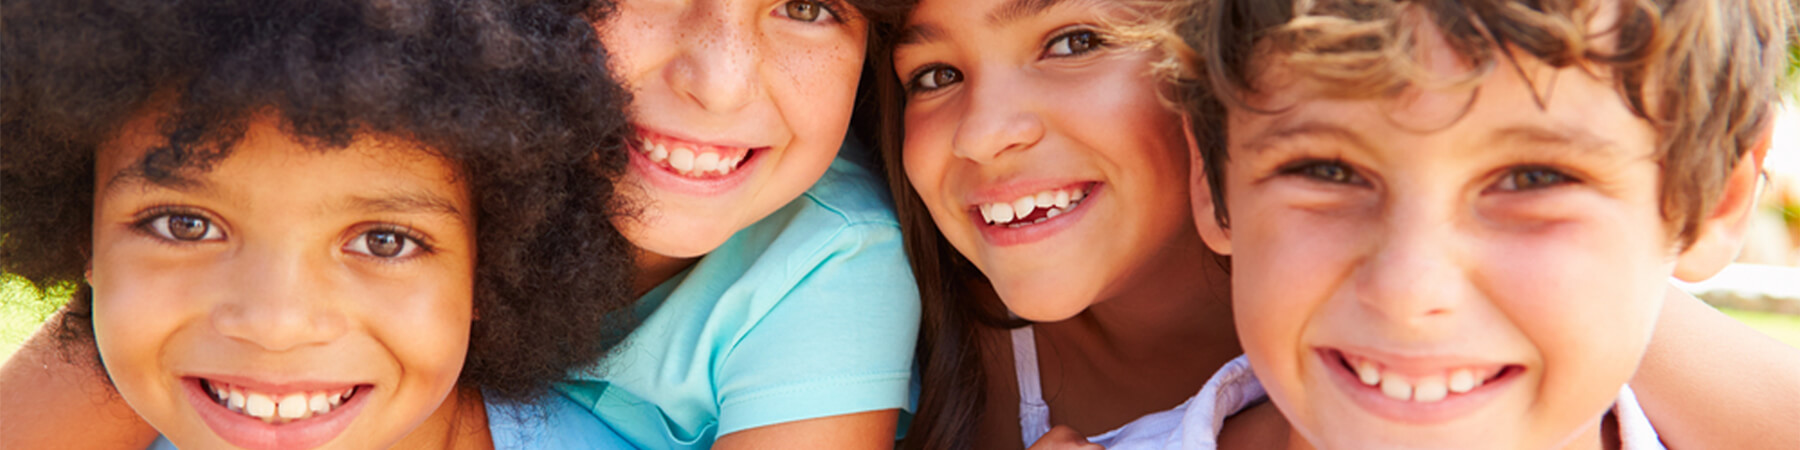 Happy Kids Smiling - Pediatric Dentistry and Orthodontics in Corpus Christi, TX